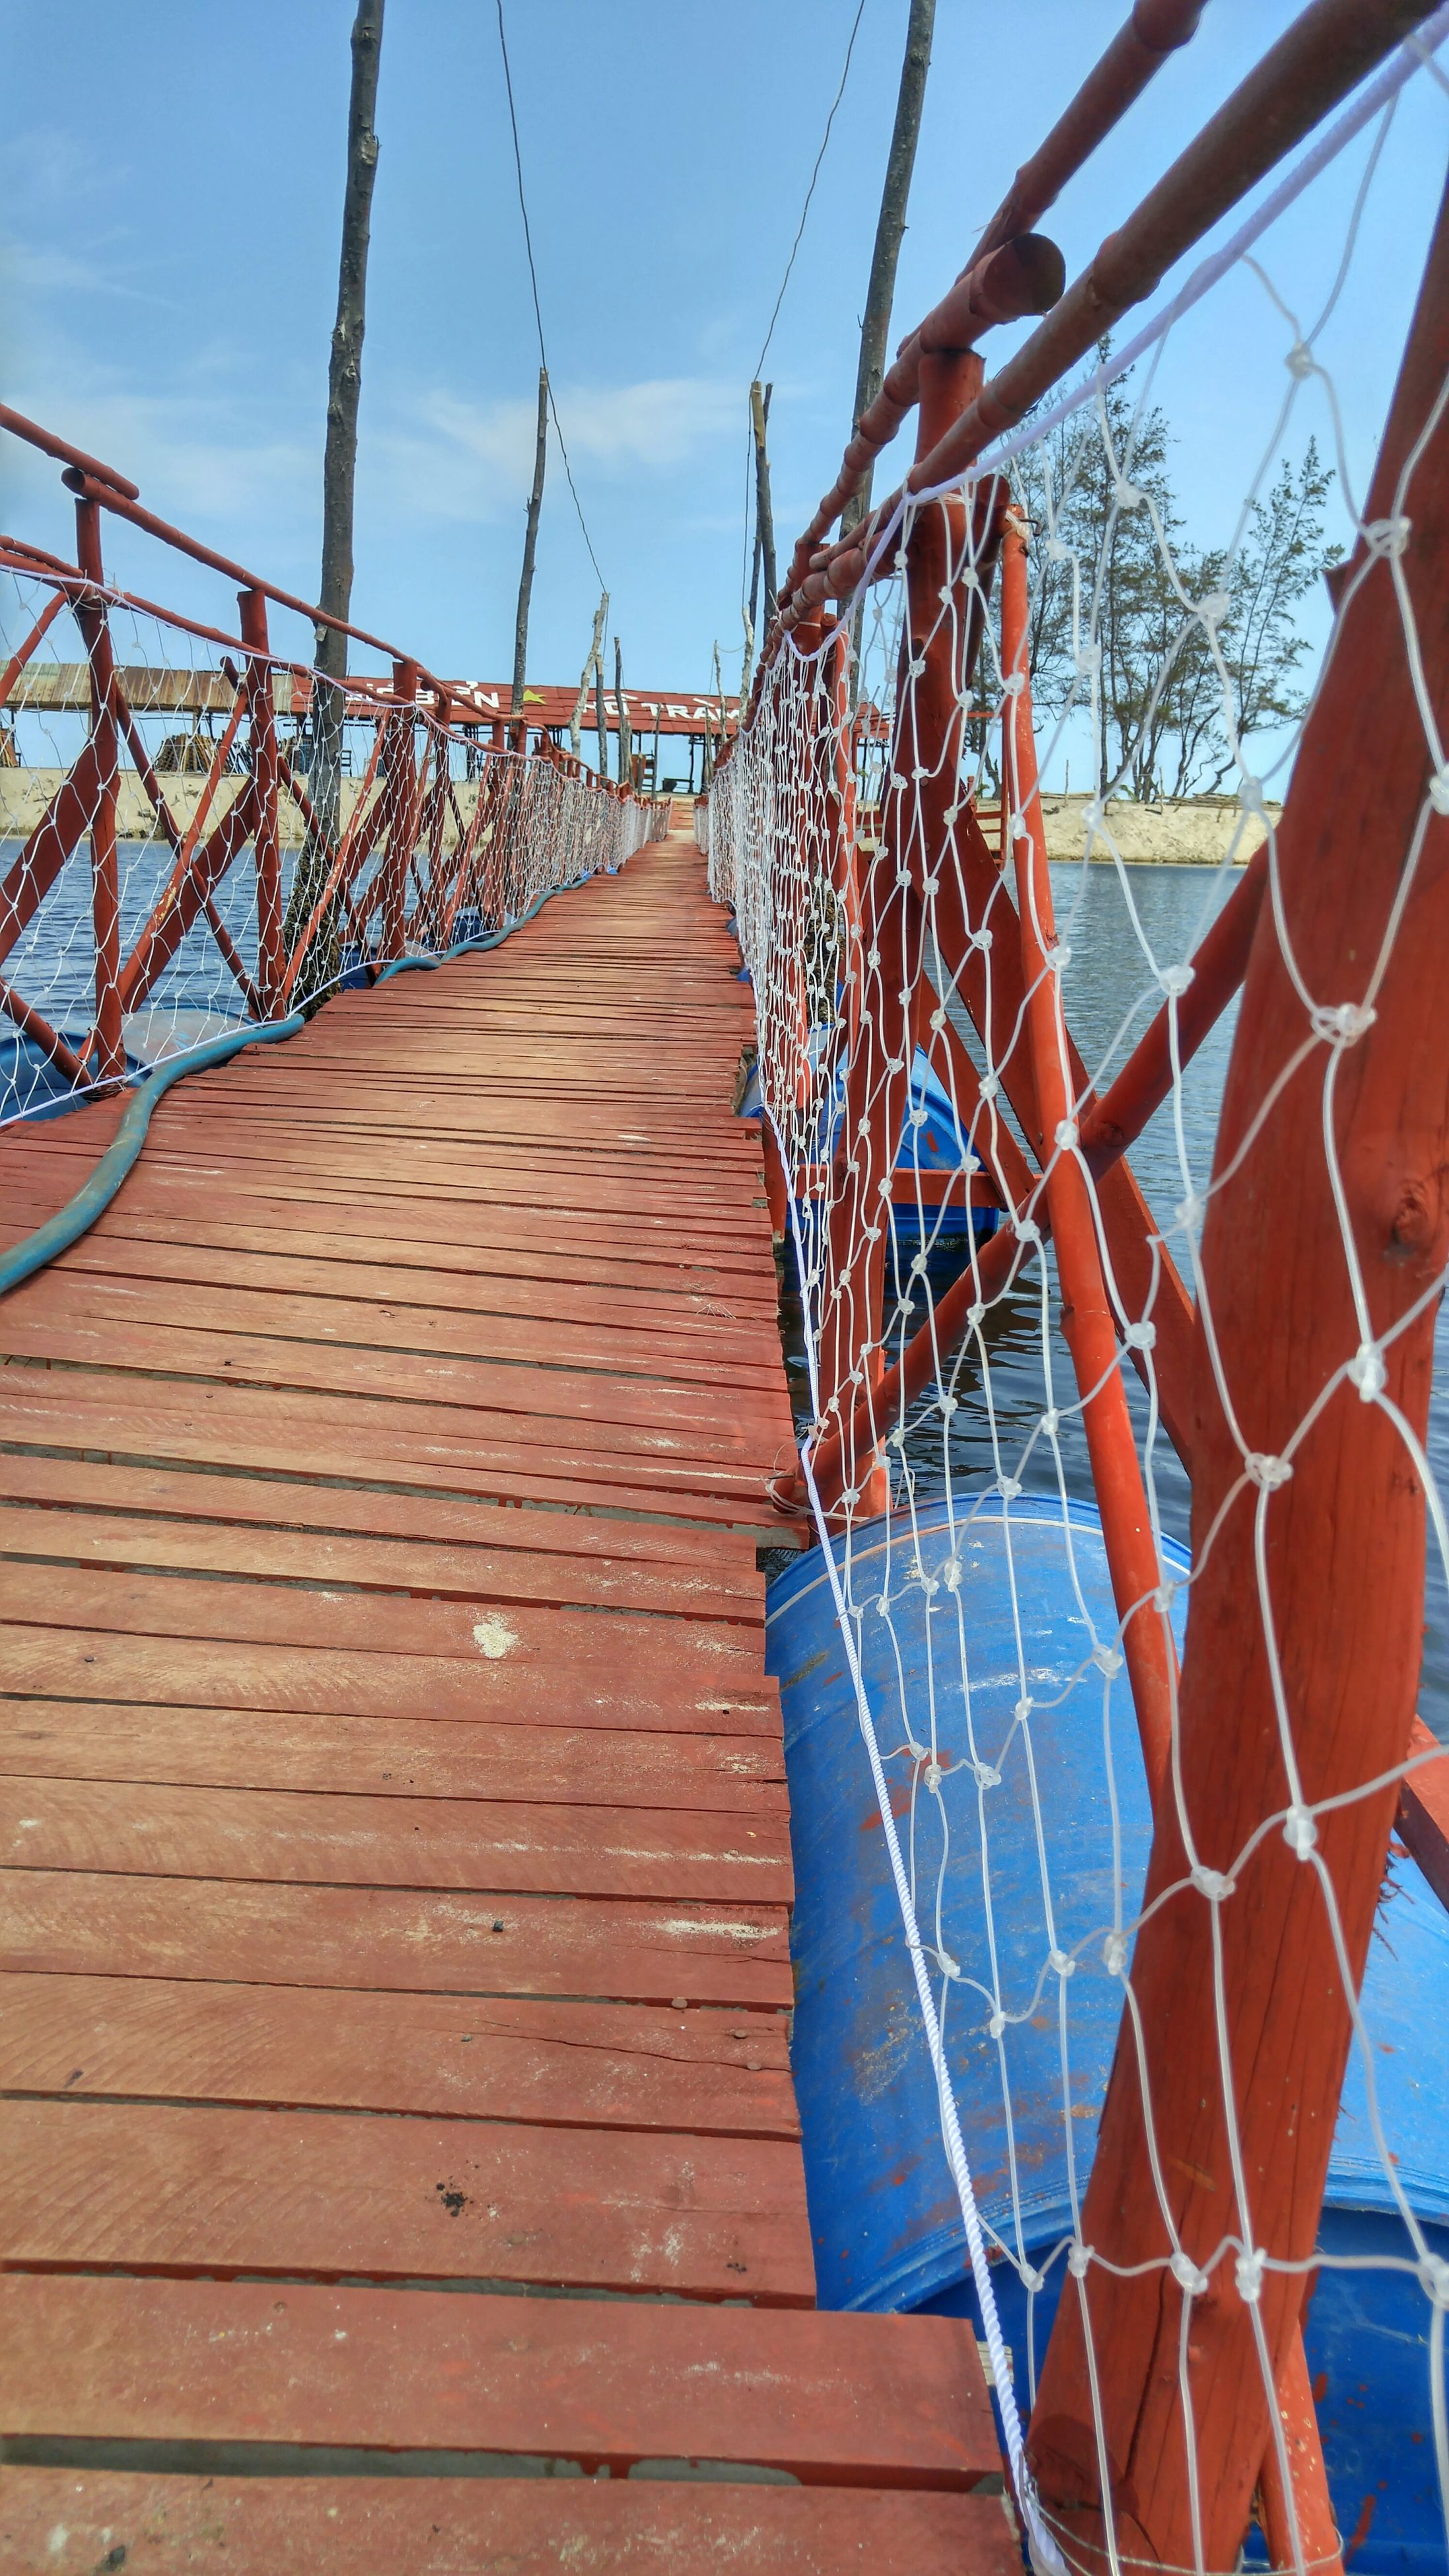 built structure, architecture, low angle view, metal, sky, building exterior, blue, connection, metallic, day, outdoors, chainlink fence, grid, sunlight, no people, pattern, diminishing perspective, clear sky, railing, protection